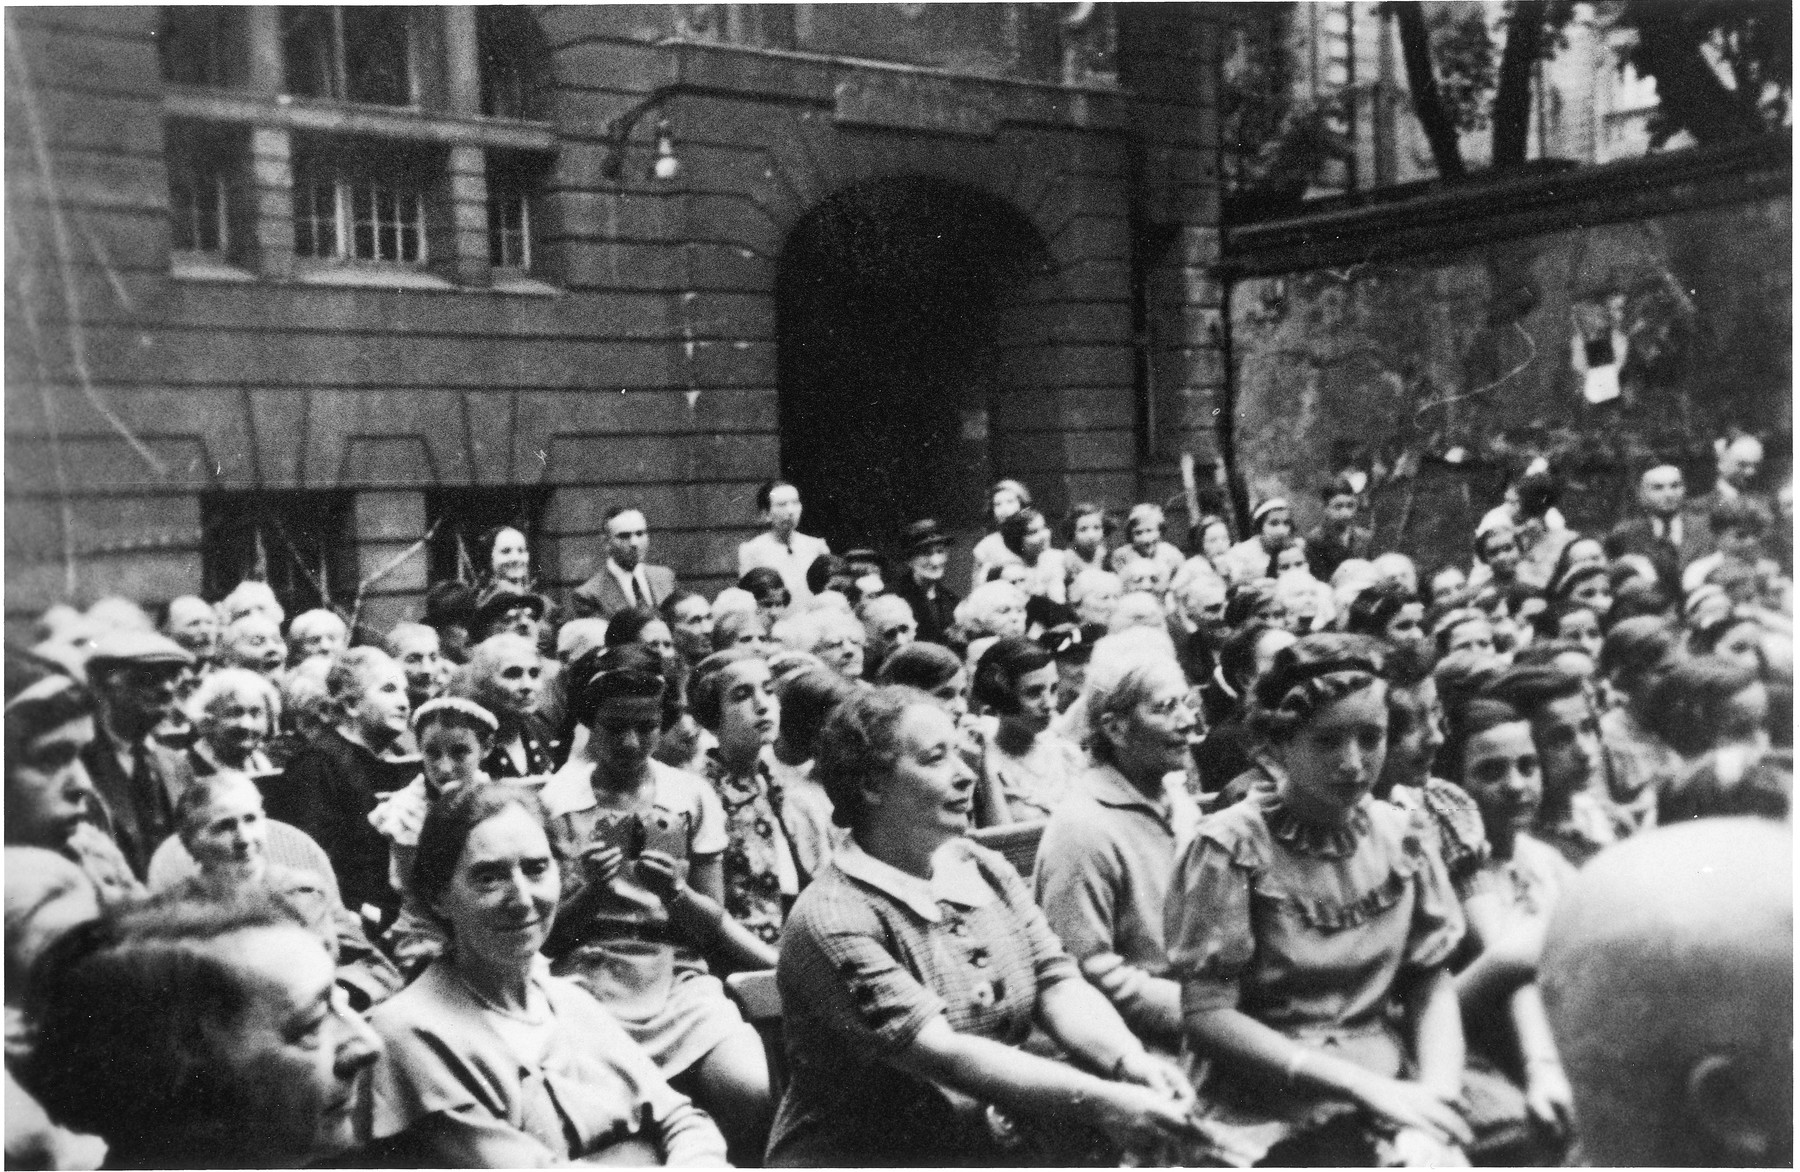 "Audience in the school yard of the Jewish school Grosse Hamburger Strasse during a performance of ""Max and Moritz"", a humorous poem by Wilhelm Busch.  People in the first row, from the left: Elisabeth Lasch (art teacher), Klara Heilmann (literature and French teacher), Mrs. Friedlaender (home room teacher), [girl with an hairband], Karla Ruelf (student, later Caroline Fierst). In the back between the two ladies: Mr Lipski (teacher). The man all the way to the right: Dr. Fritz Wiener. The elderly people in the audience are from the old age home (next to the school), the others are students."